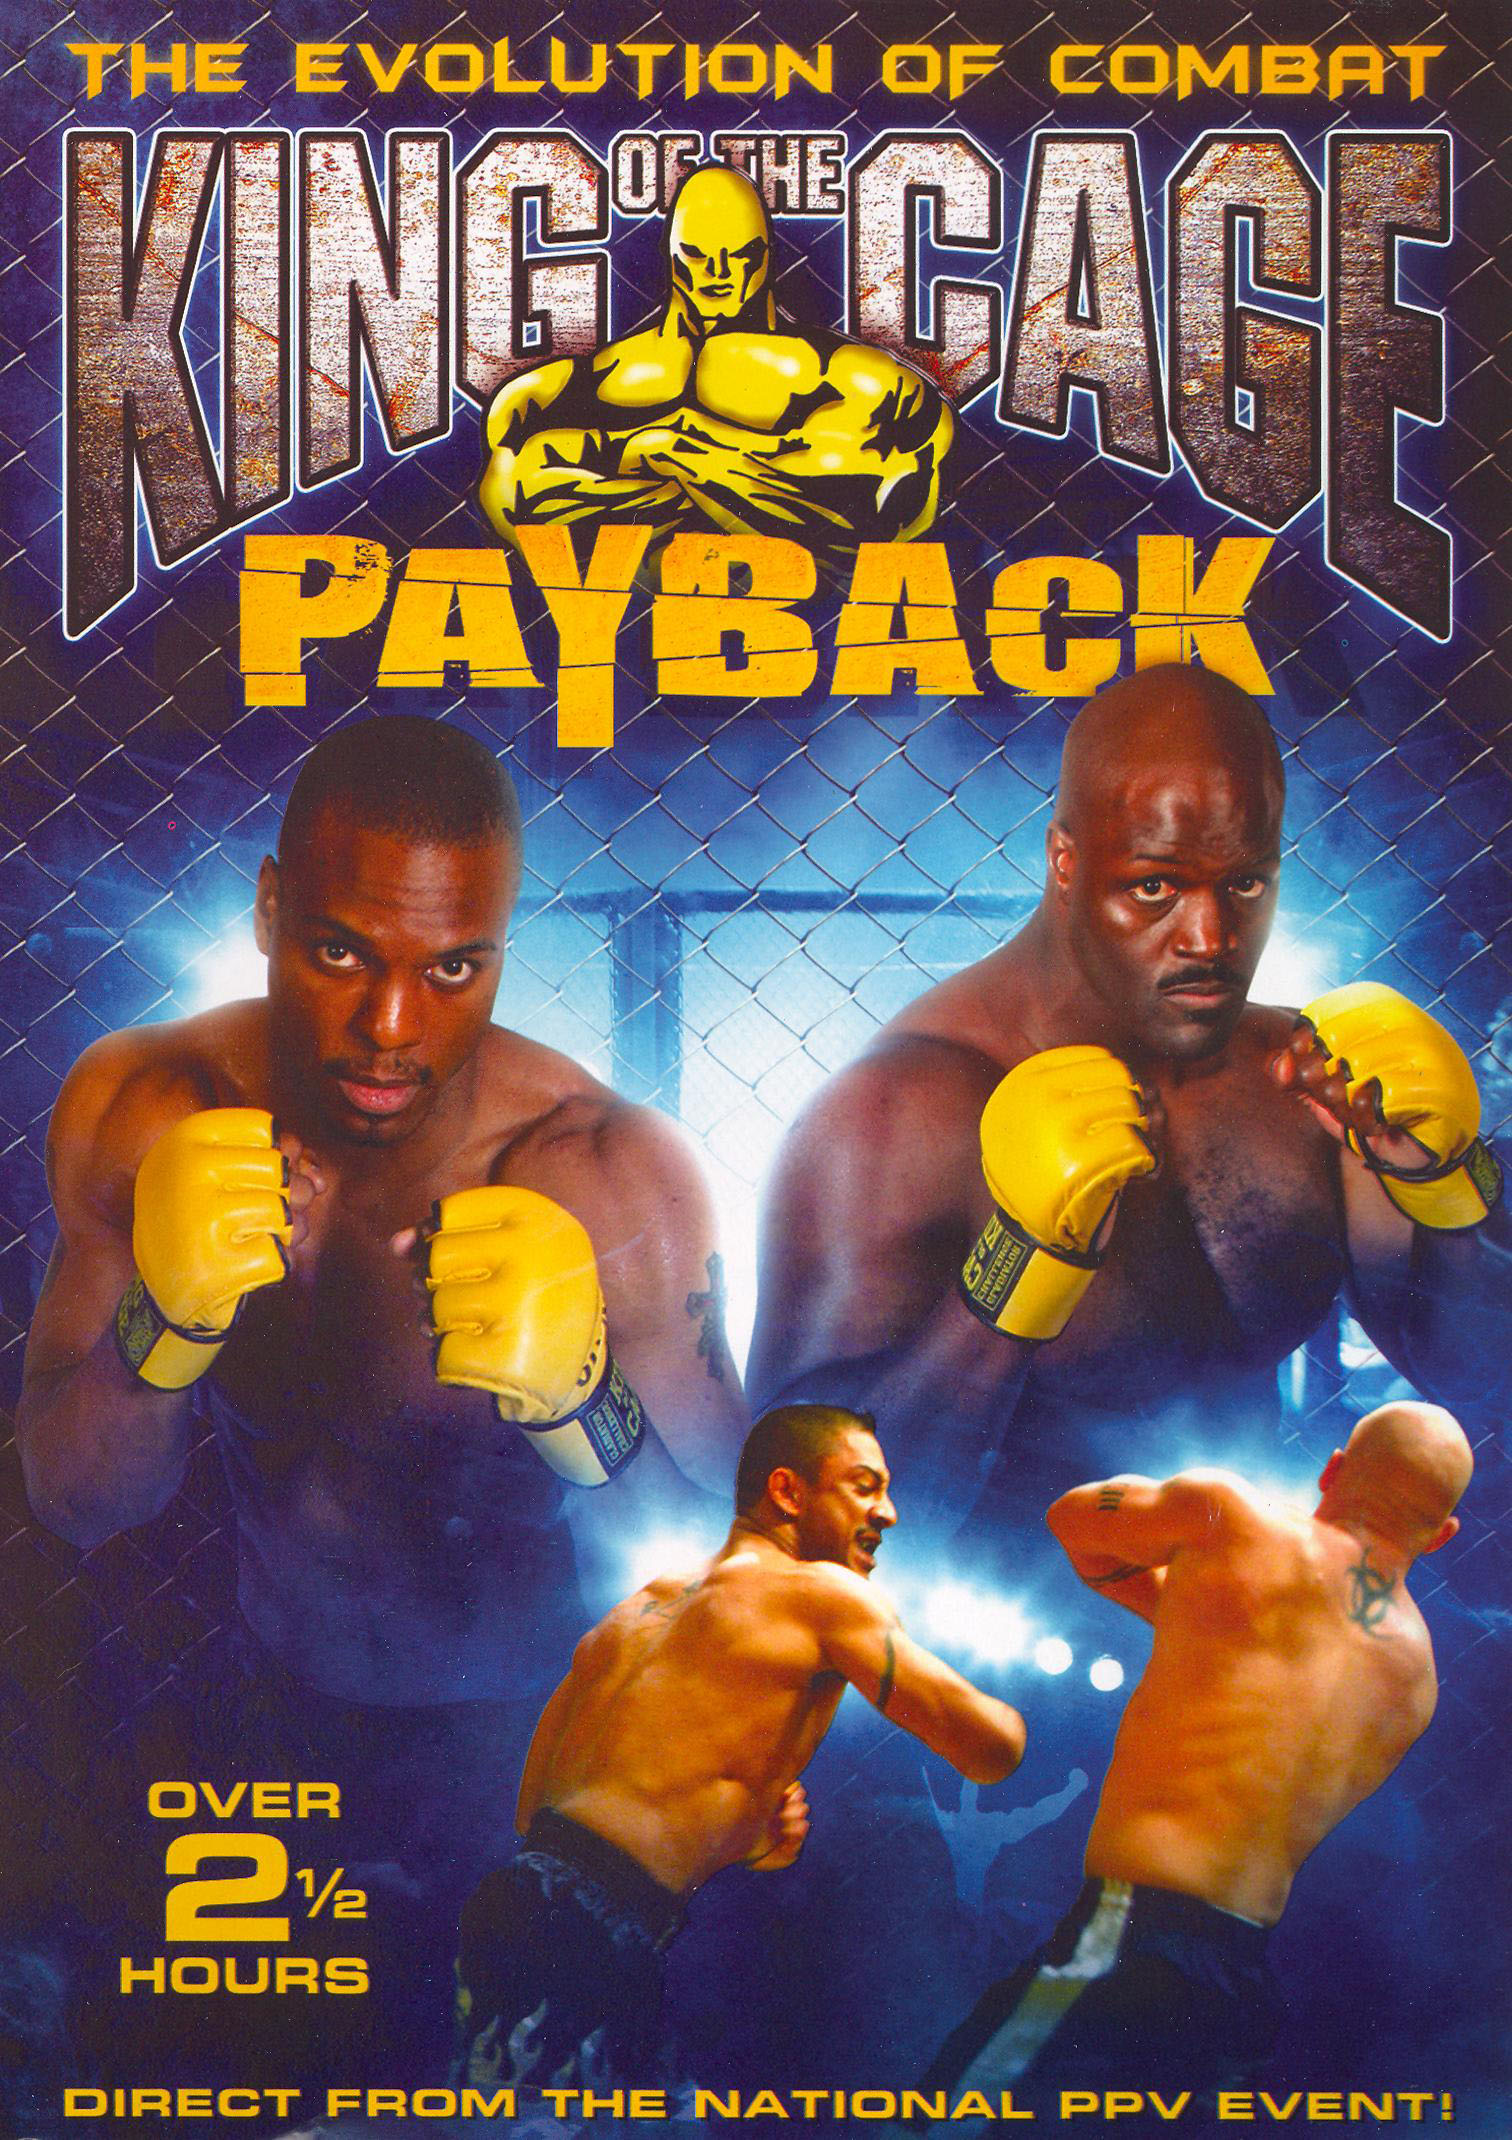 King of the Cage: Payback